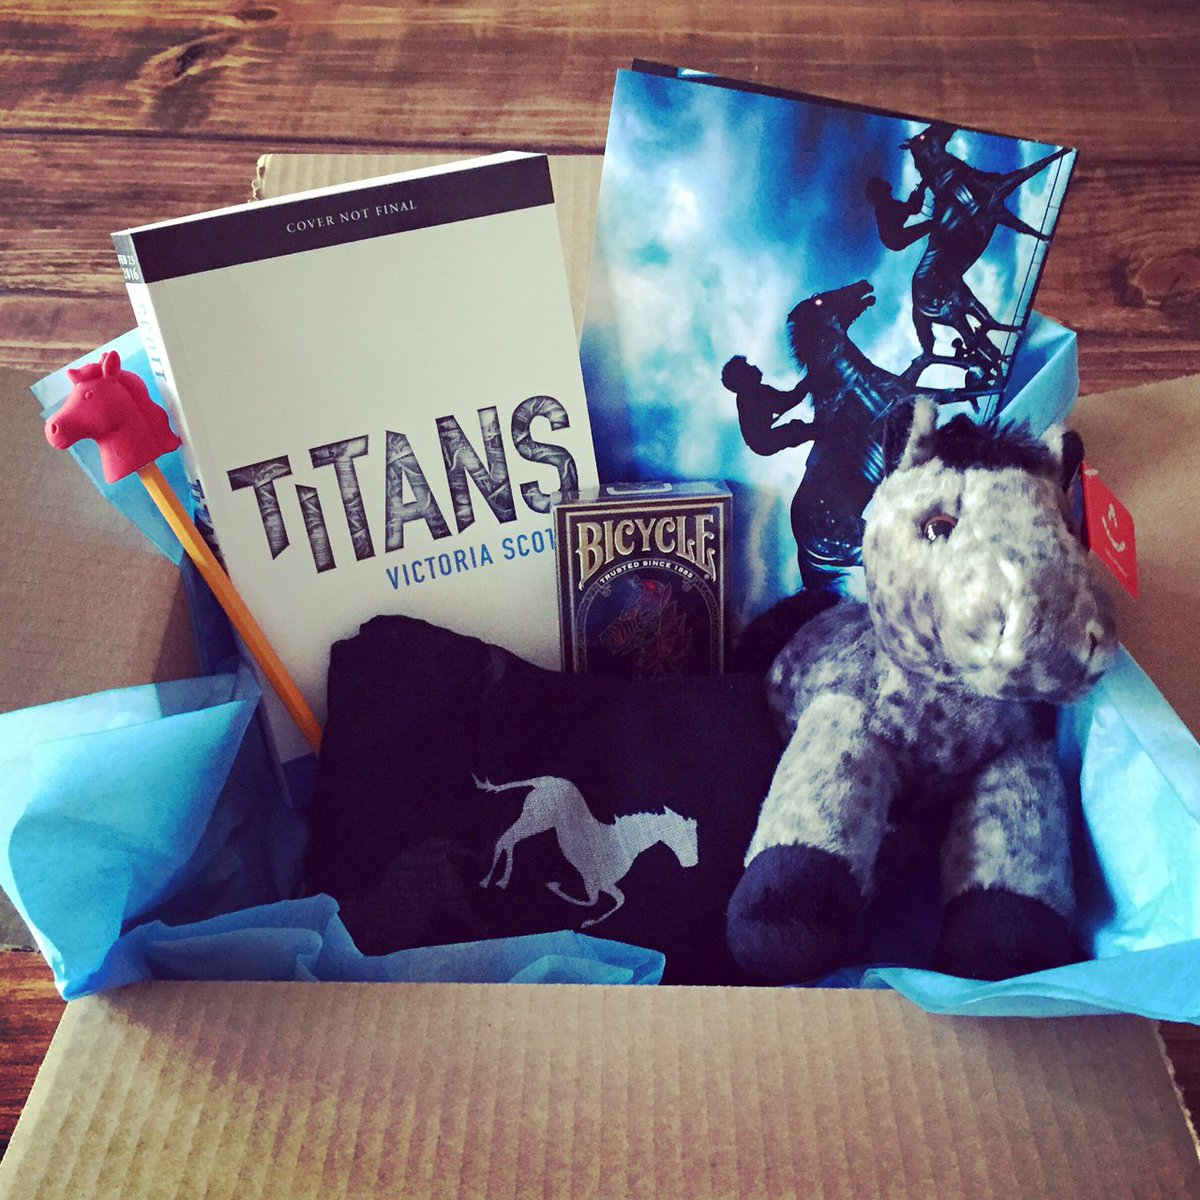 Last day to win the first of five TITANS prize boxes. RT to enter!  TITANS will be in bookstores 02.23.2016. https://t.co/sG9Brjjkh1